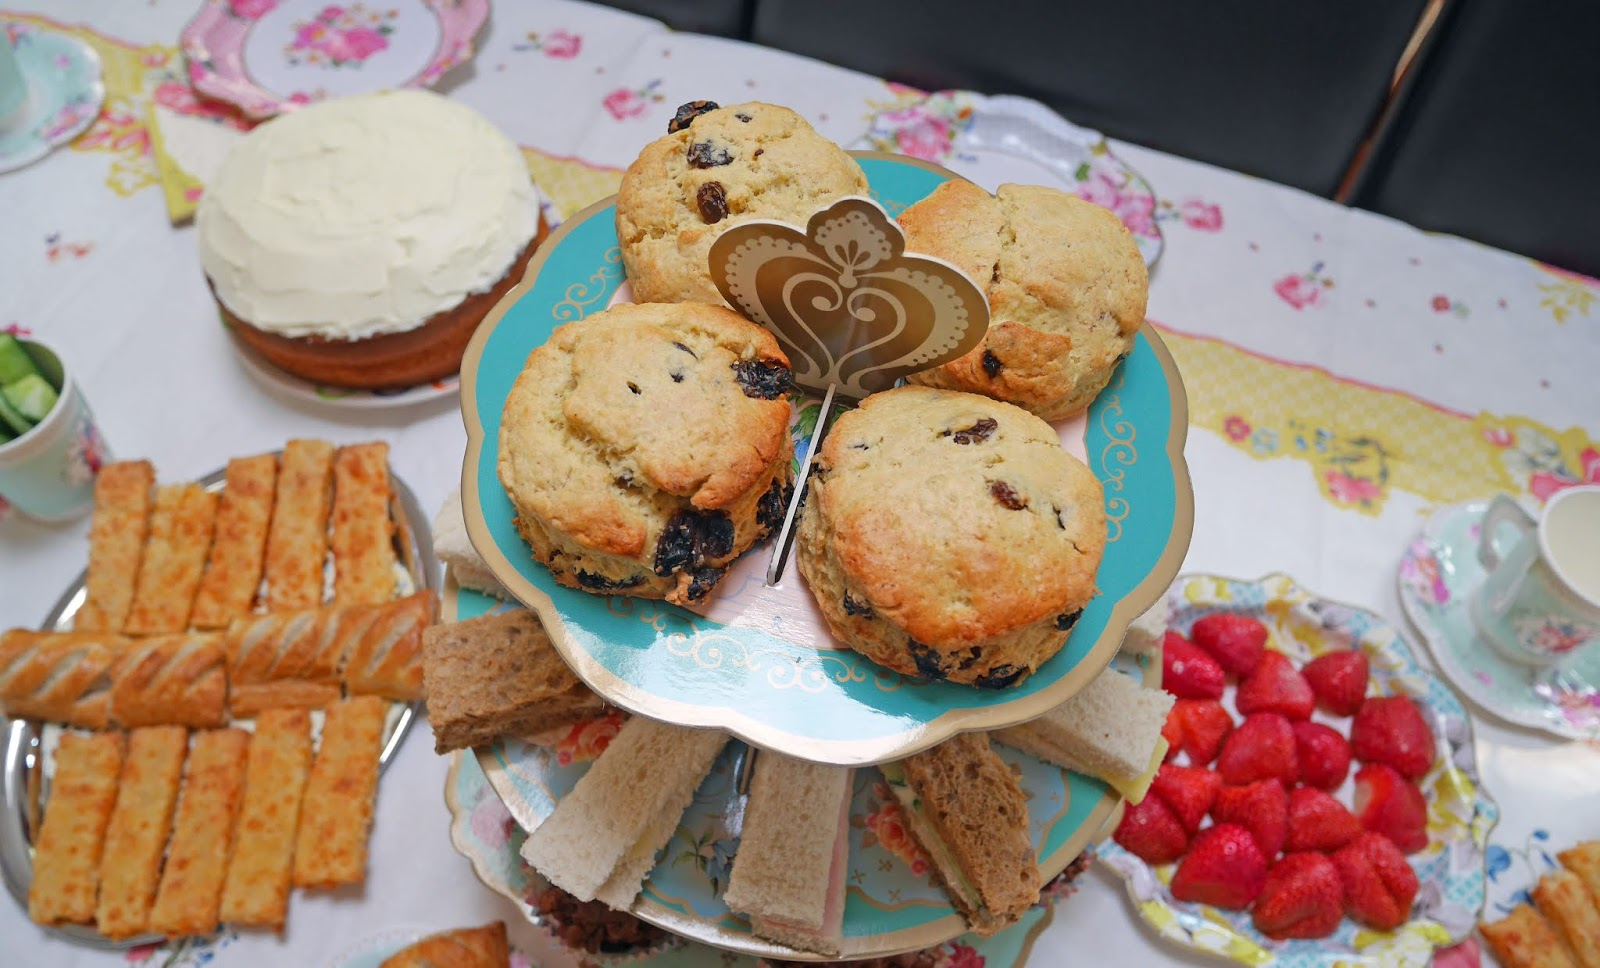 Truly Scrumptious afternoon tea cakestand with scones and sandwiches